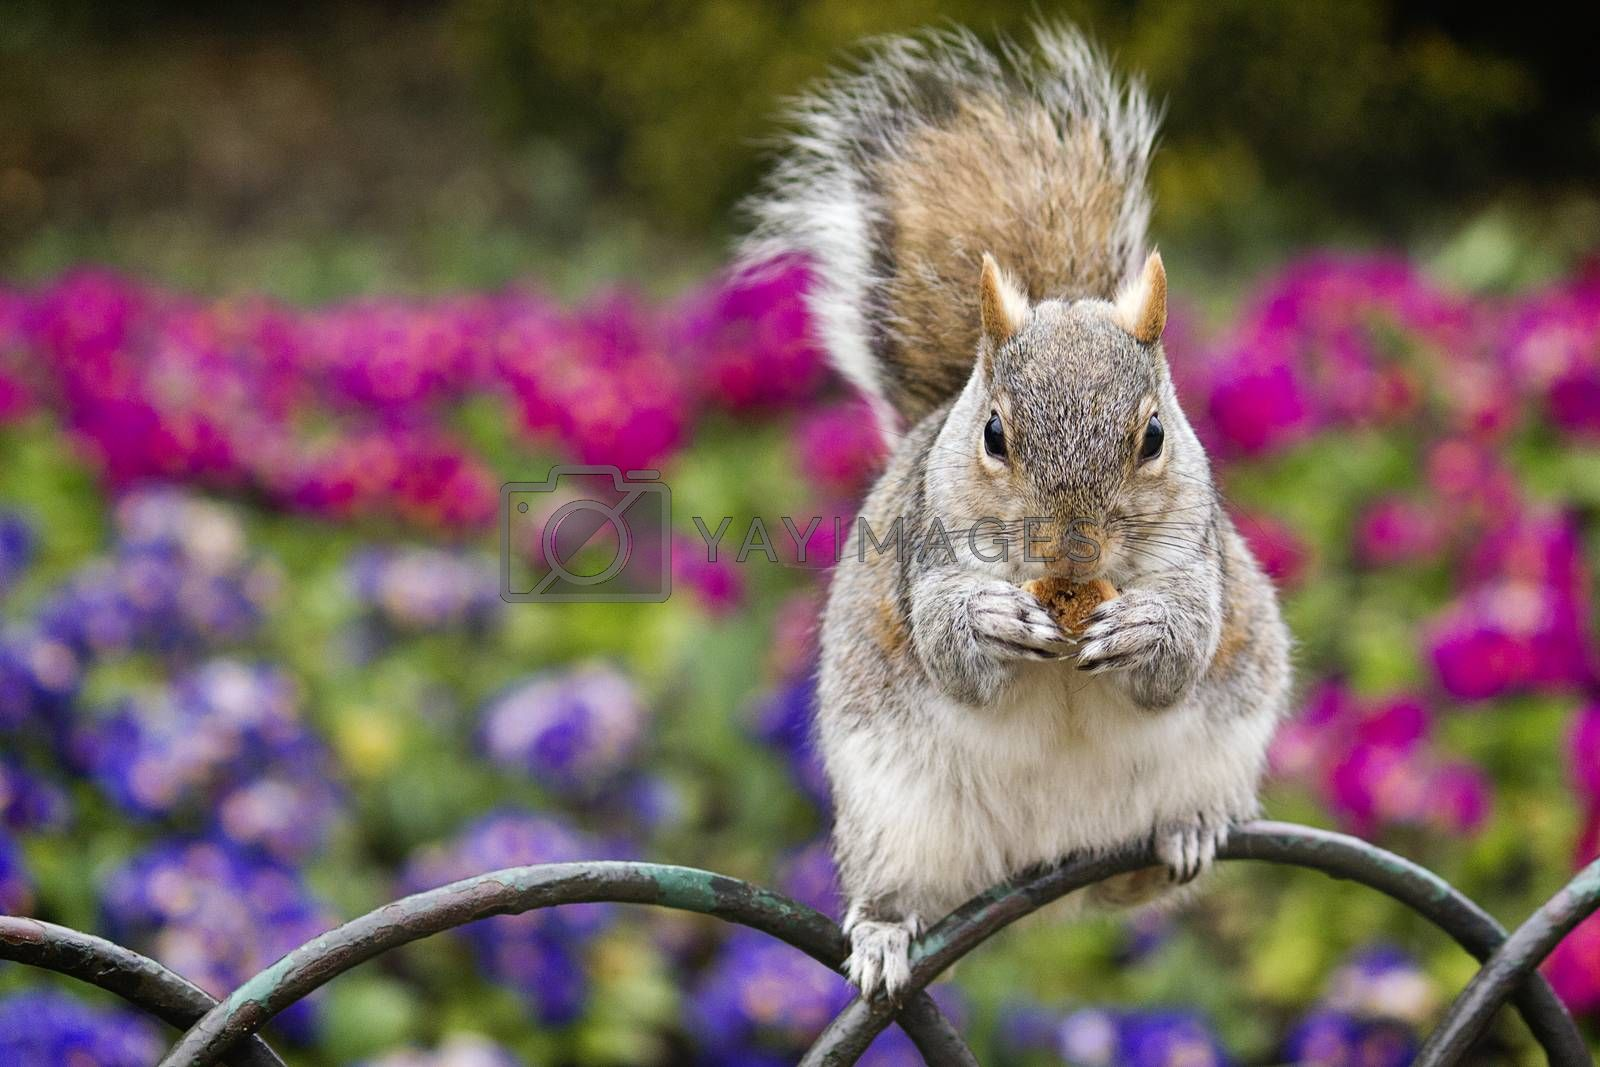 Squirrel eating food in Hyde Park, London, with a colourful backgrounds of flowers.